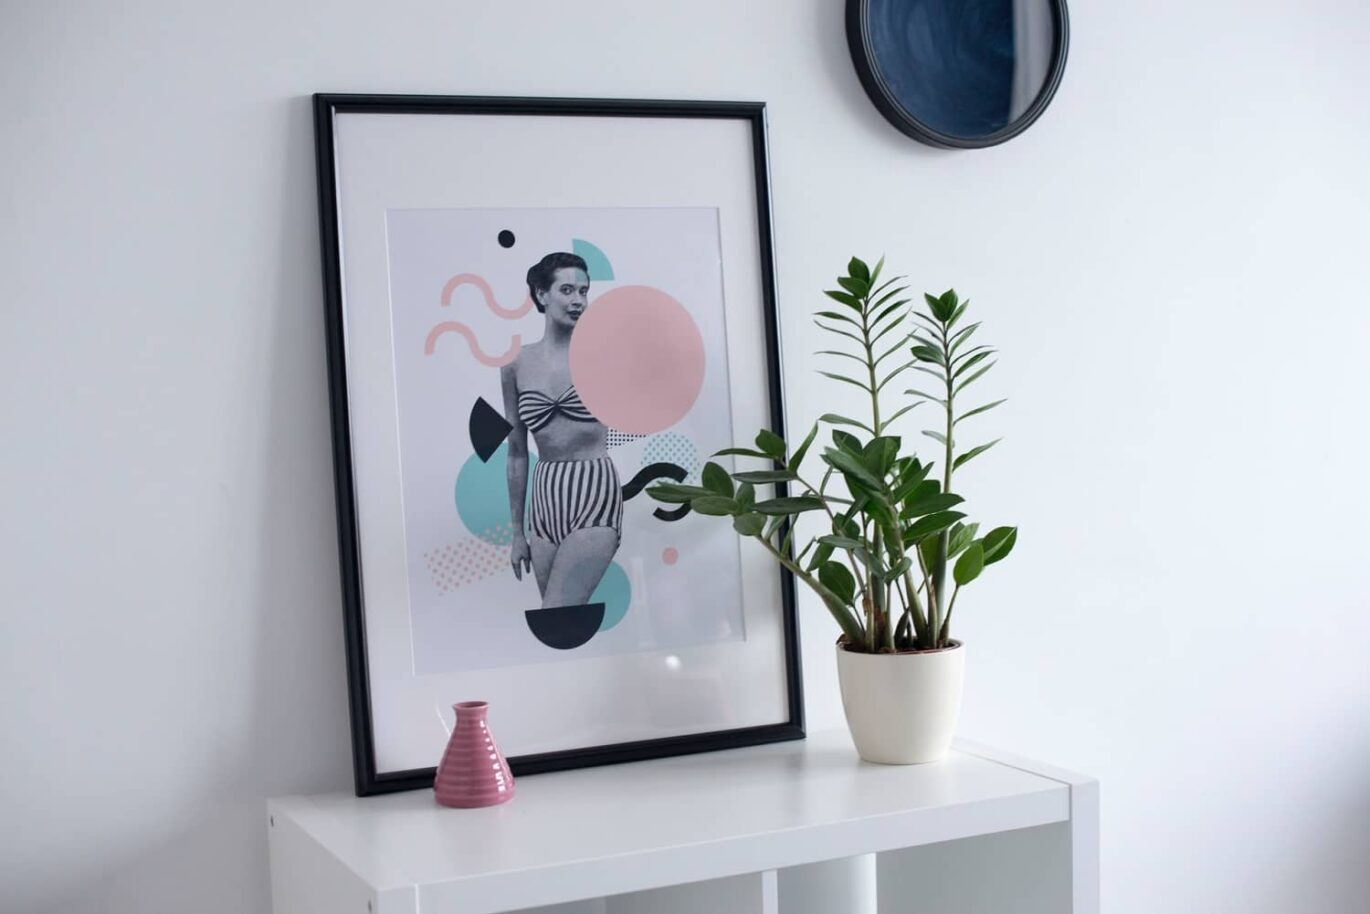 A photo frame and a round wall art